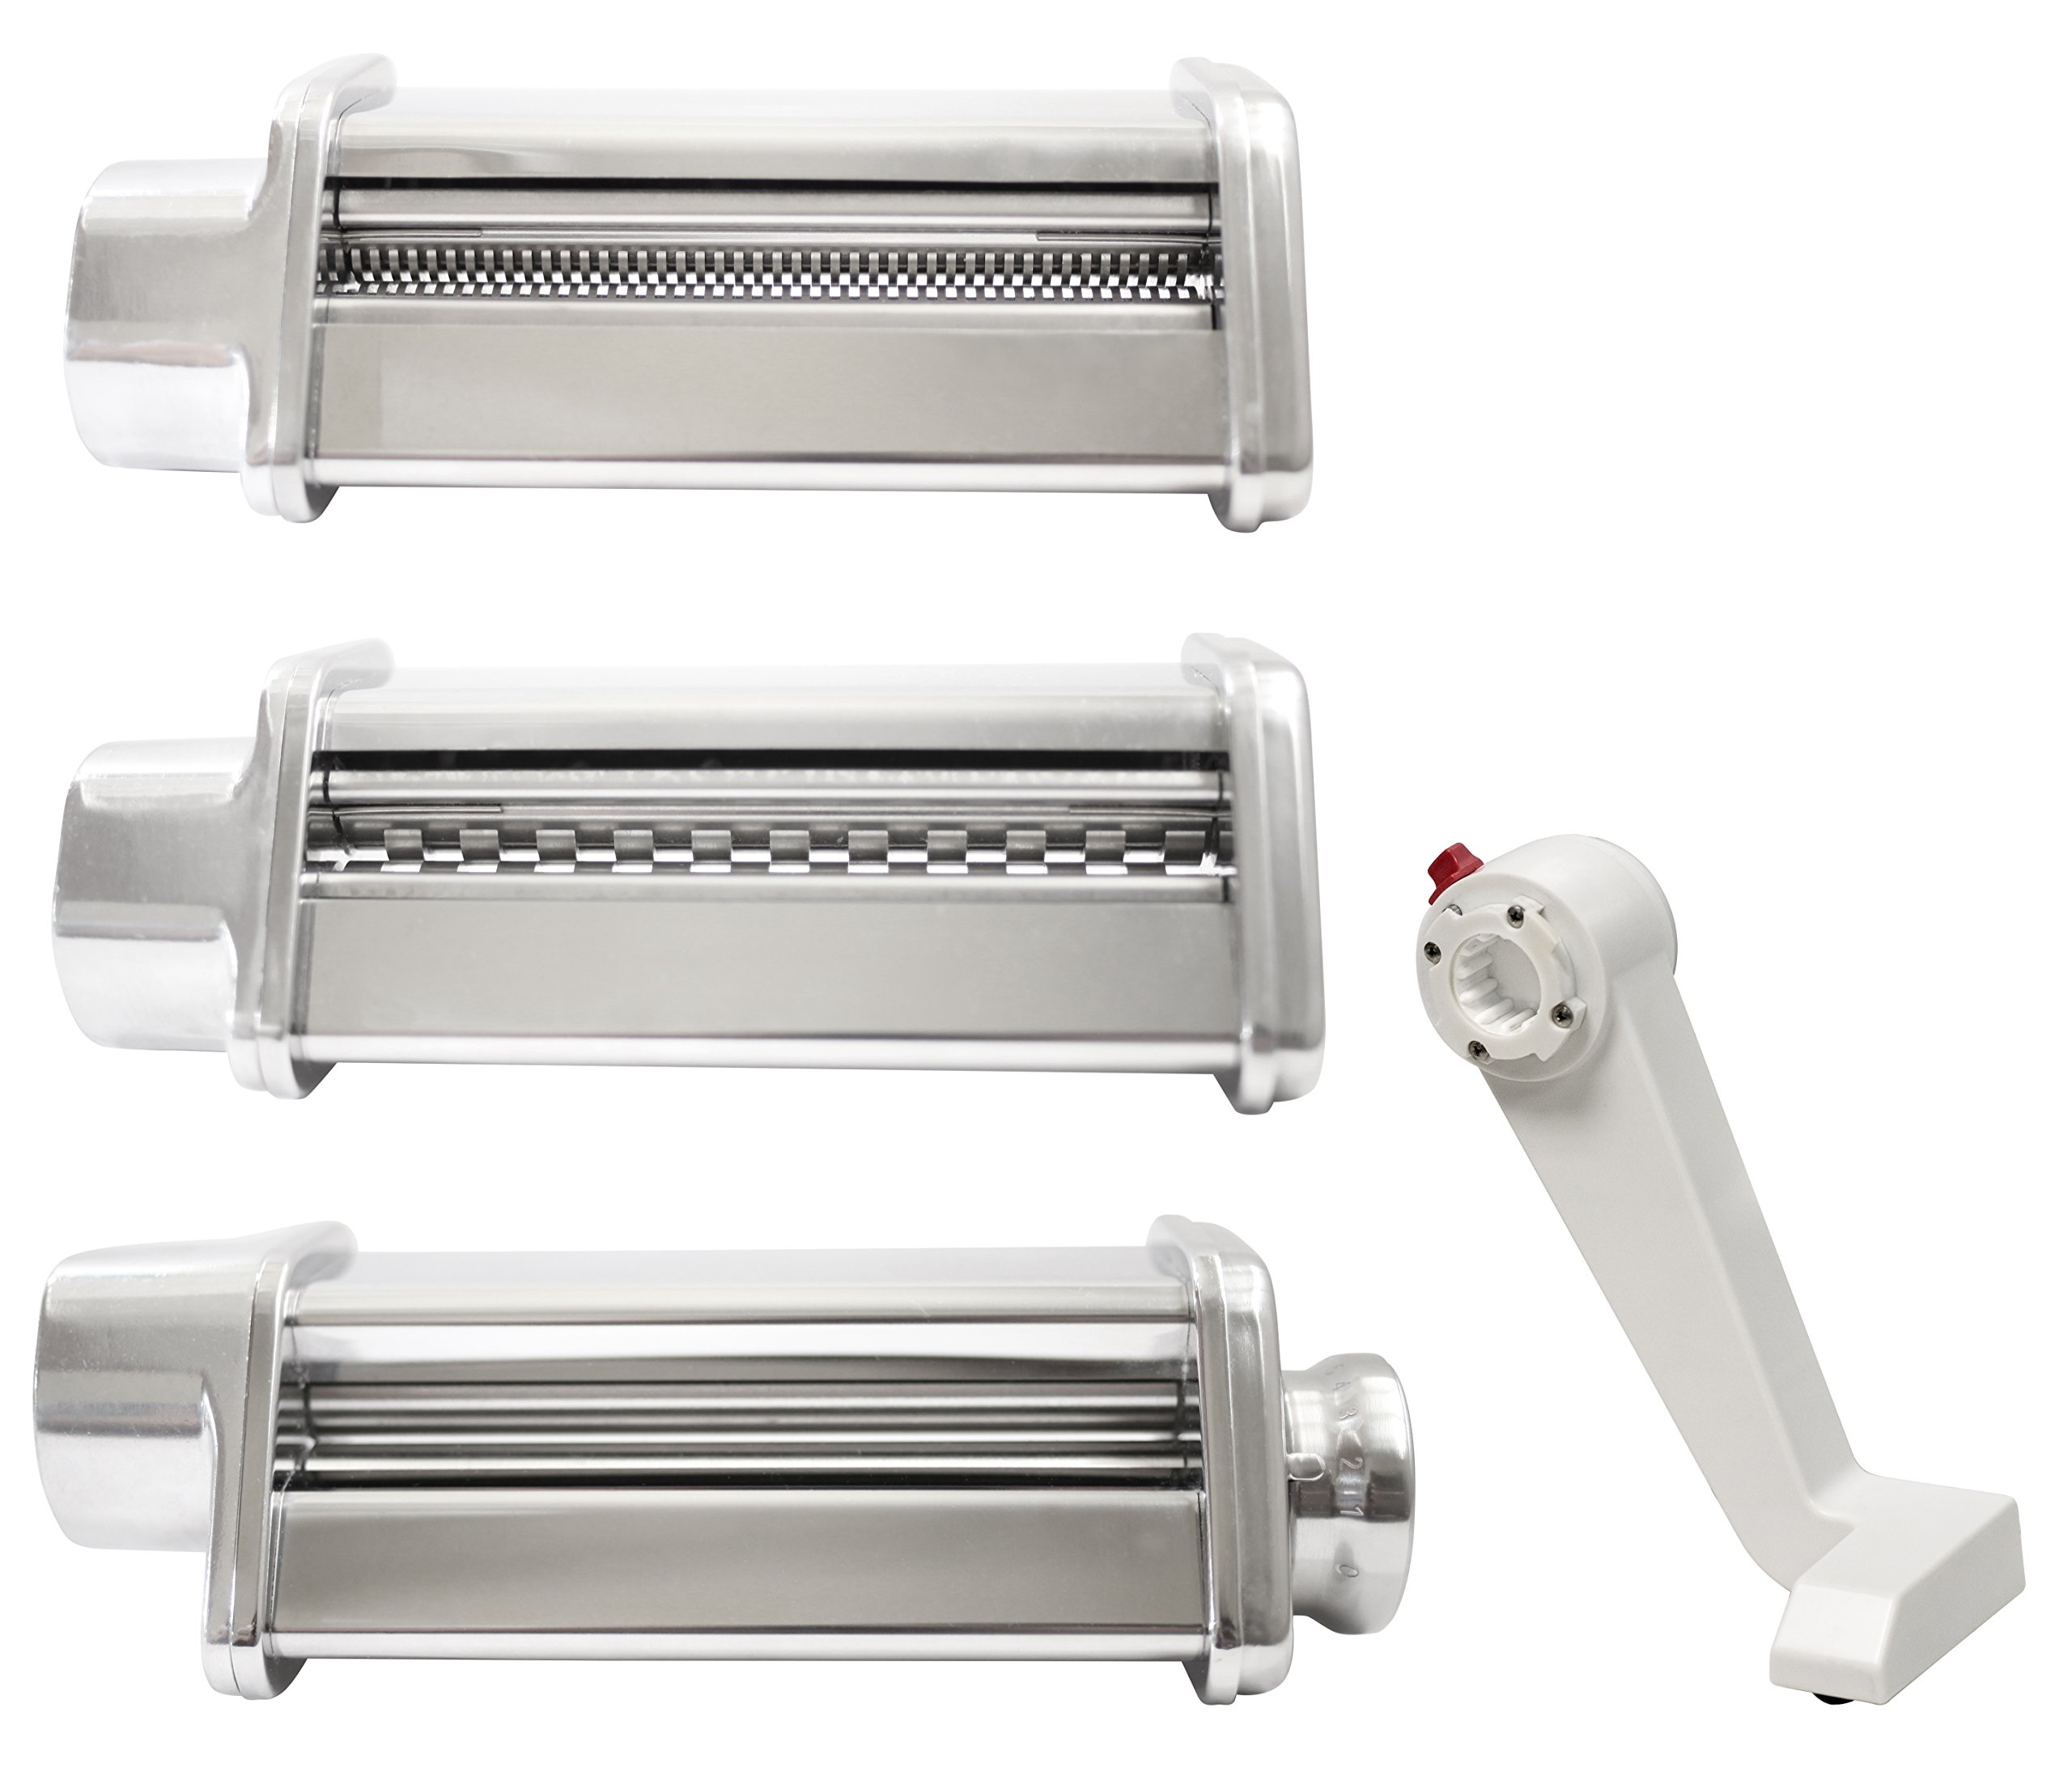 Pasta Roller and cutter for Spaghetti and Fettuccine for Bosch Universal Plus Mixer by Bosch